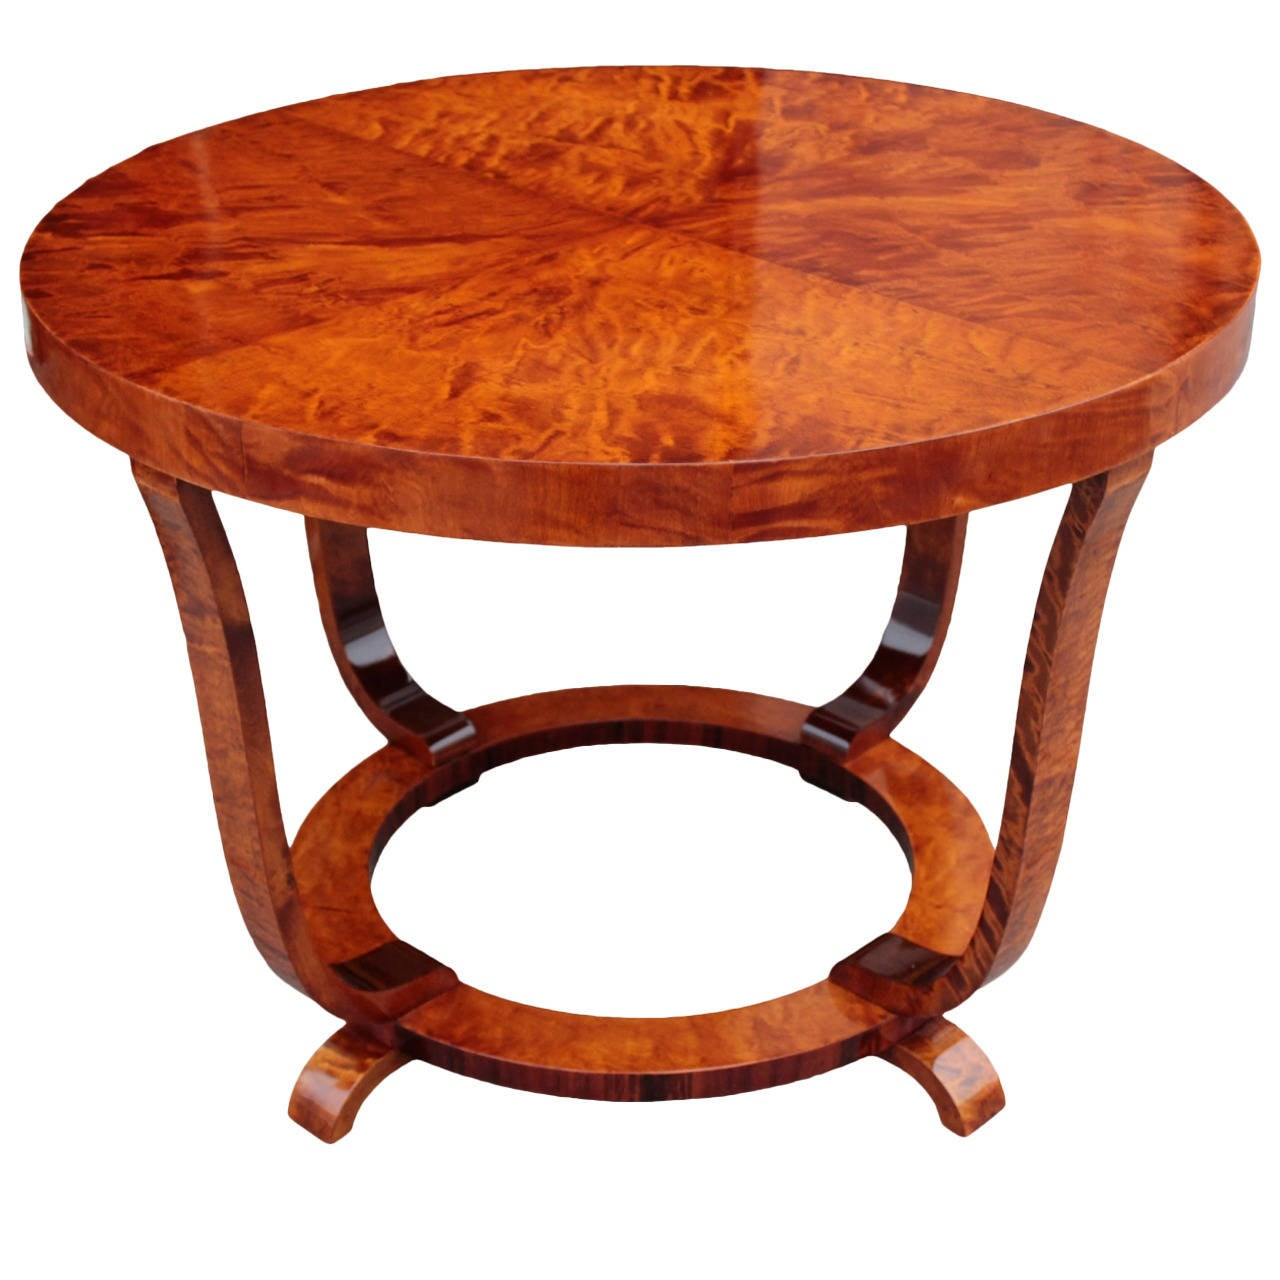 Swedish Art Deco Period Round Cocktail Or Coffee Table At 1stdibs